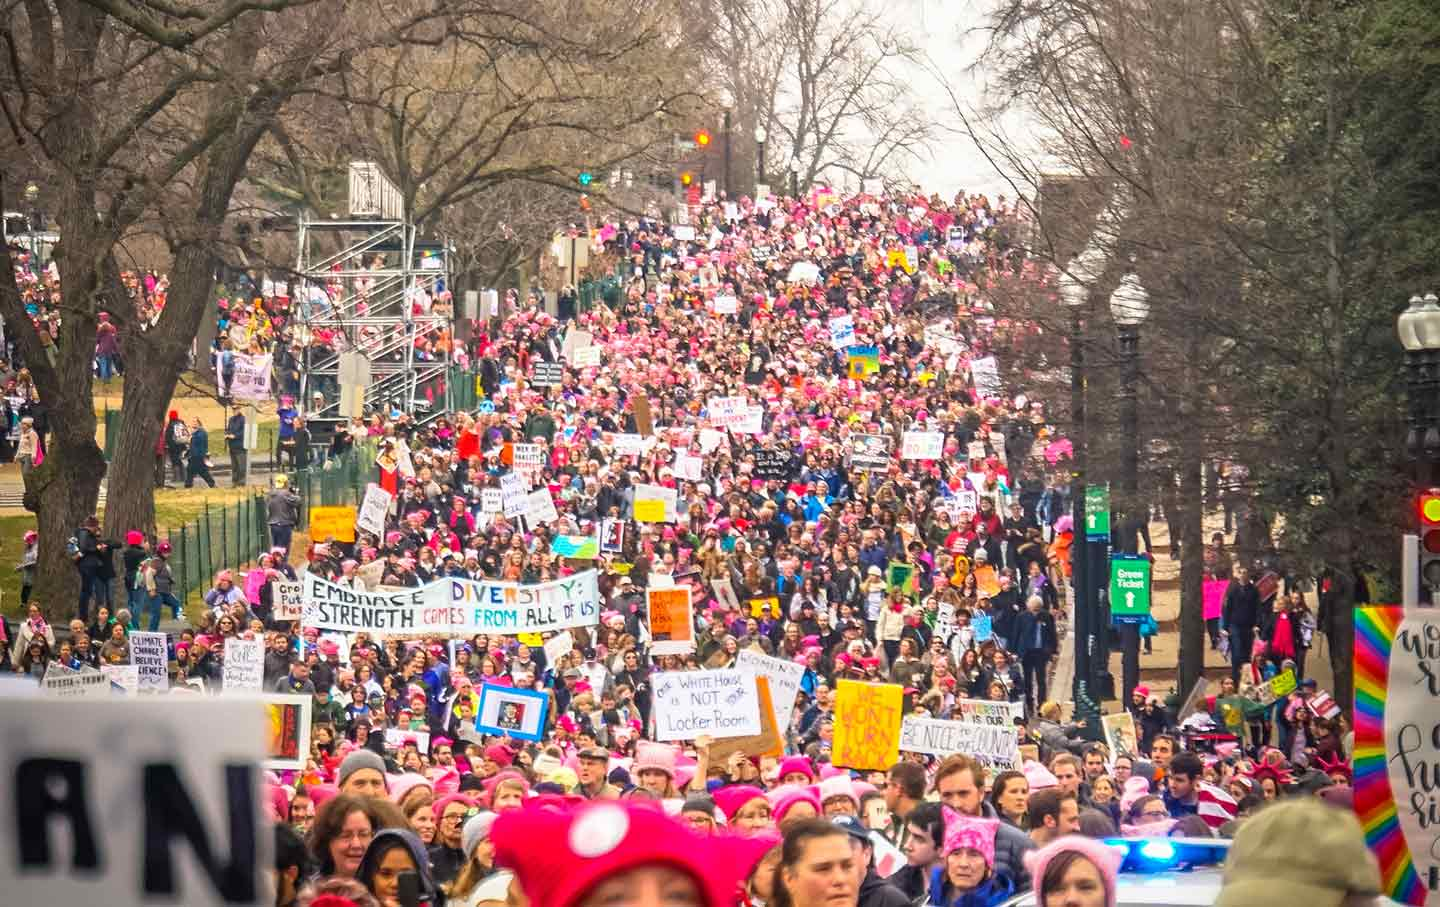 Picture of The Women's March proceeds down the National Mall in Washington, DC, on January 21, 2017. (Photo by Ted Eytan, CC BY-SA 2.0)